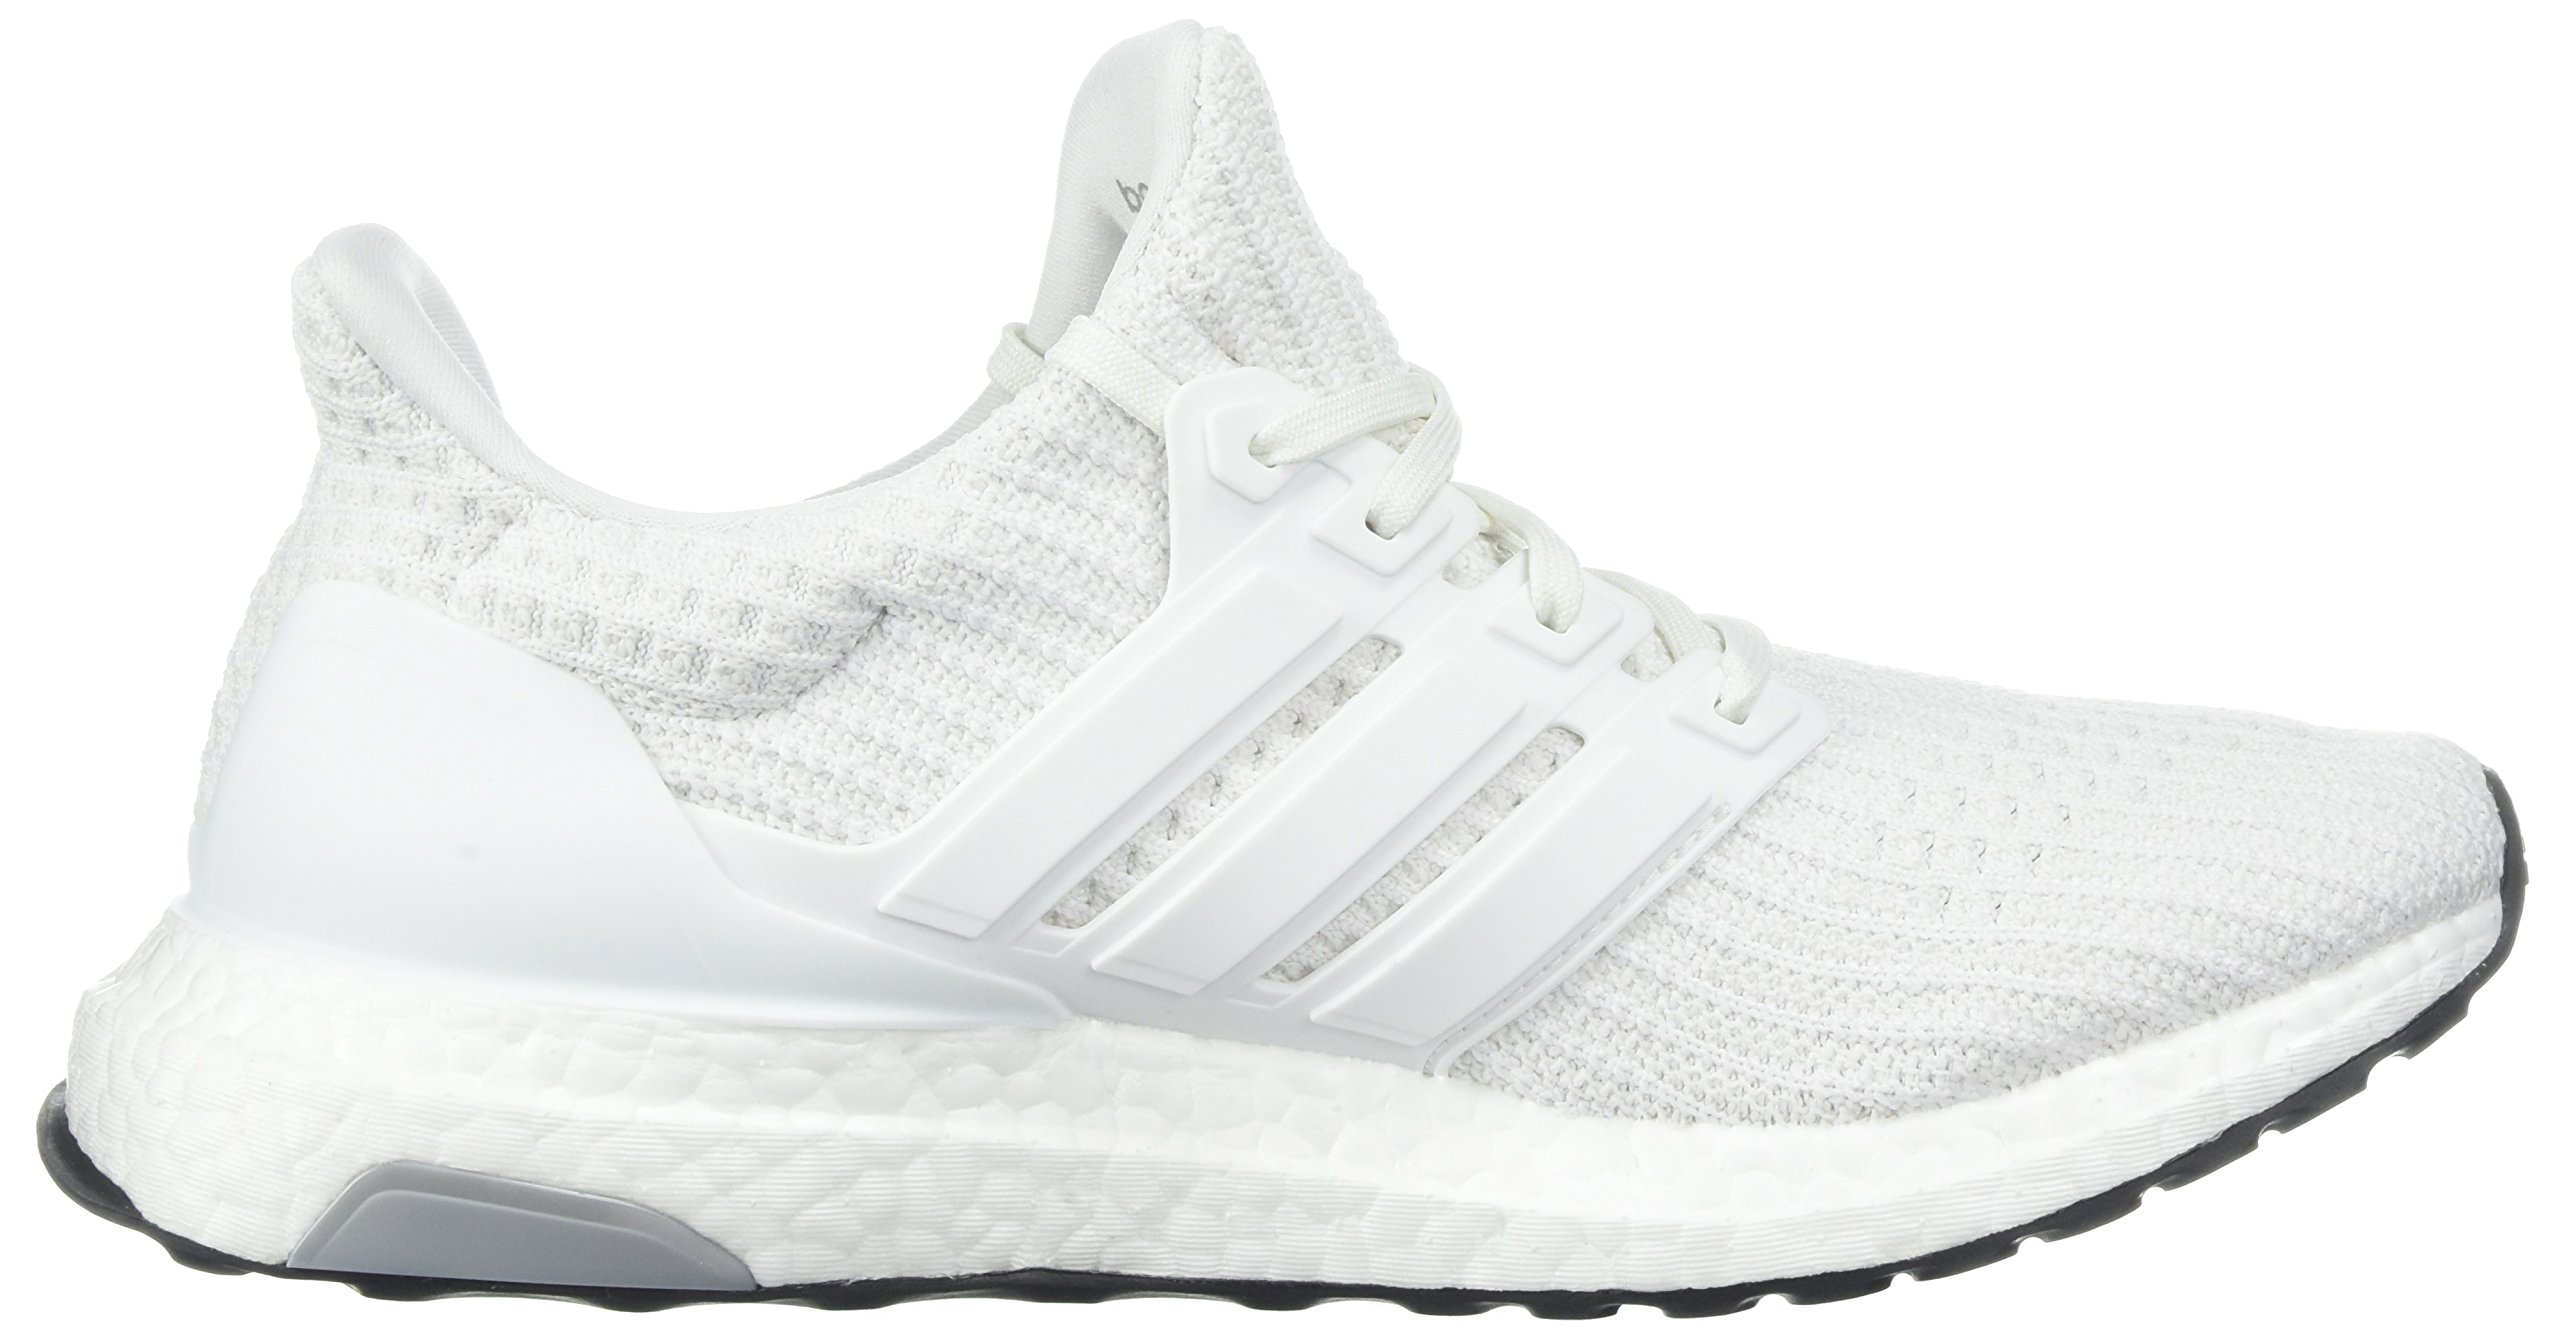 adidas Men's Ultraboost Road Running Shoe, White/White/White, 6.5 M US by adidas (Image #7)